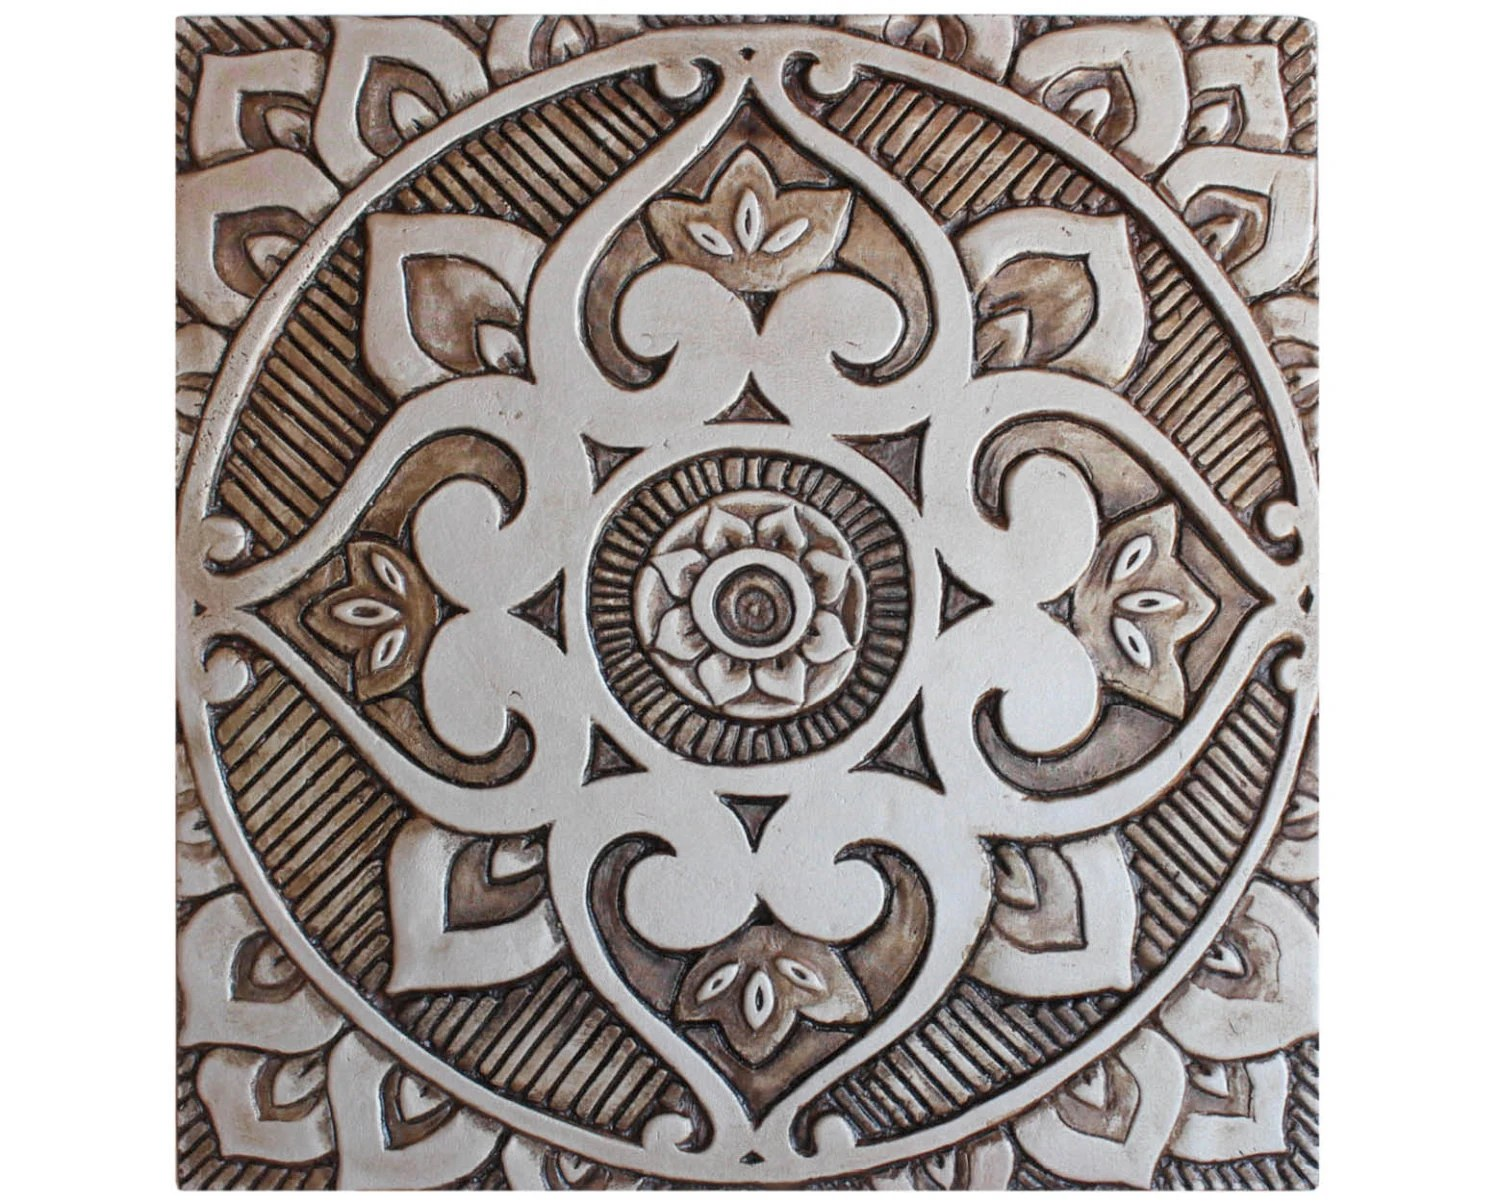 Bagno Design Guatemala Mandala Wall Art Made From Ceramic Exterior Wall Art Mandala Art Mandala Wall Hanging Handmade Tile Mandala3 Silver